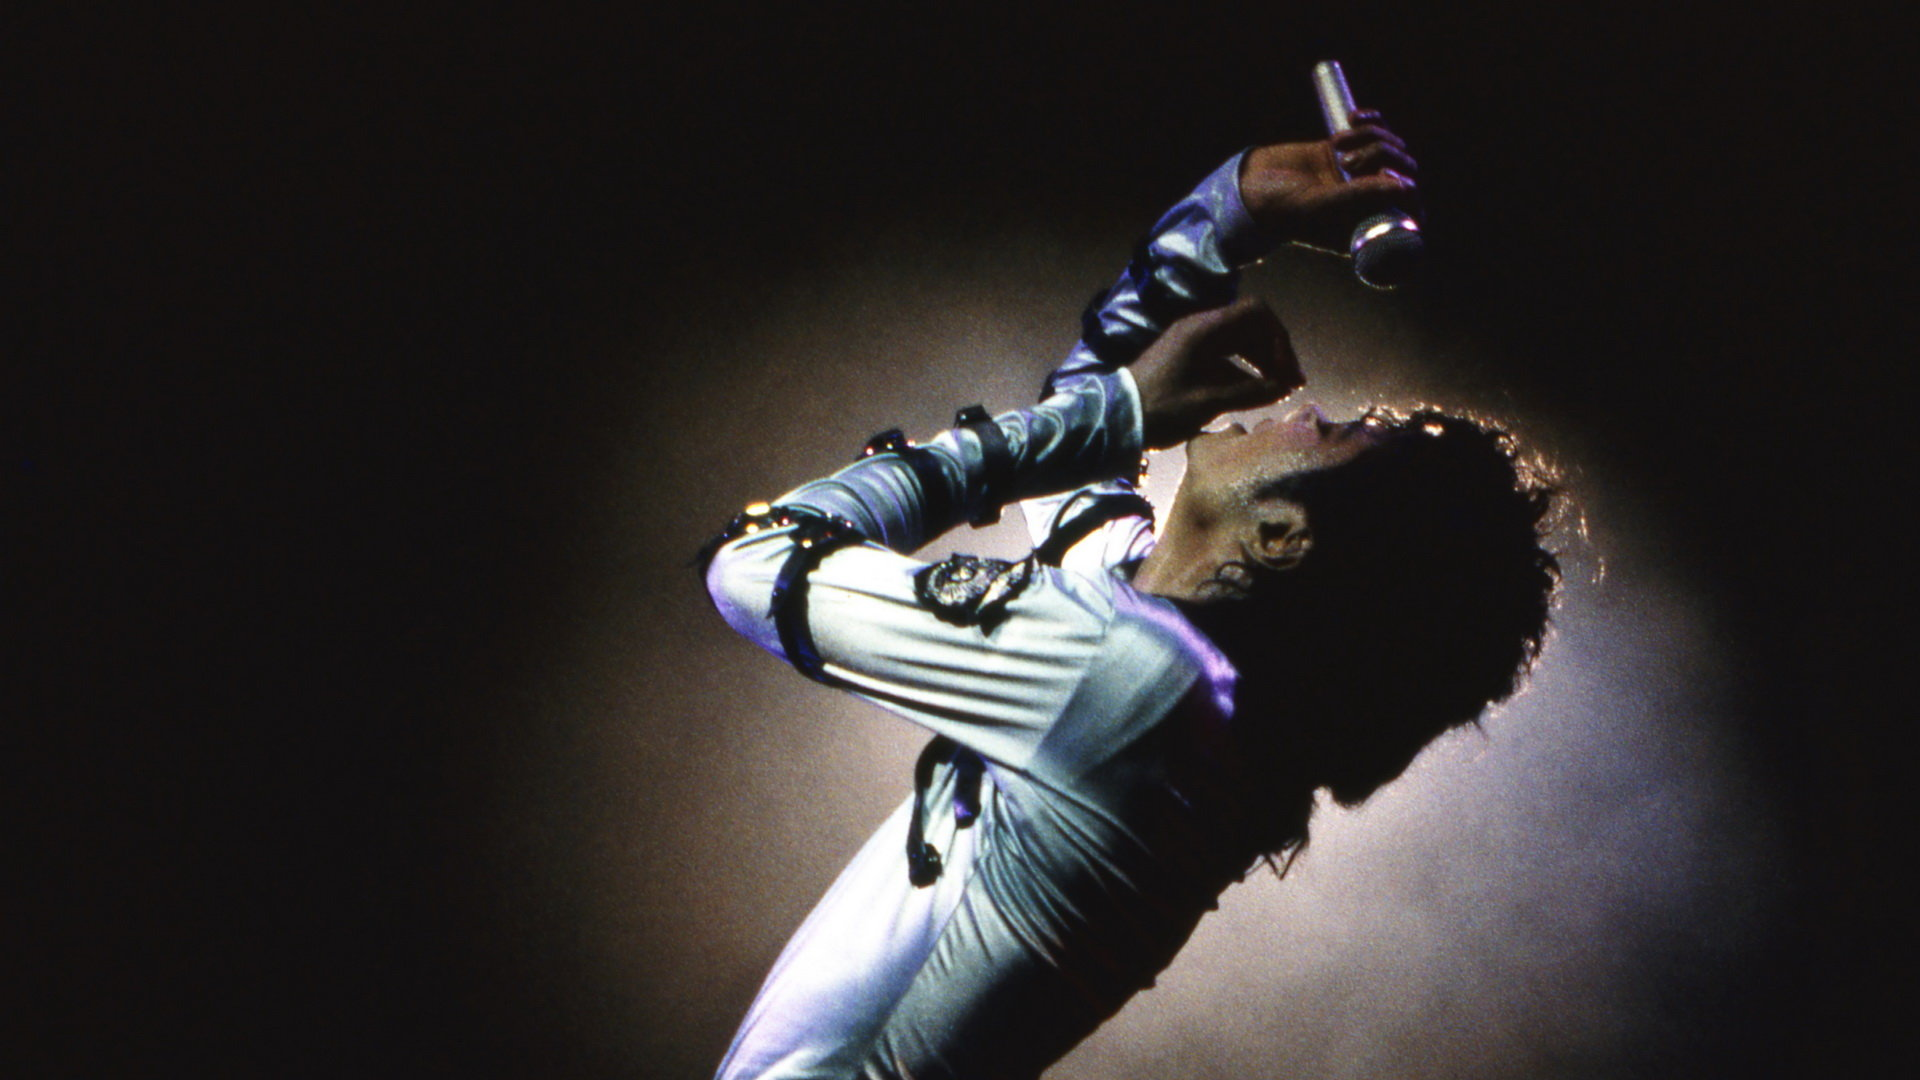 Michael Jackson Wallpapers 1920x1080 Full HD (1080p